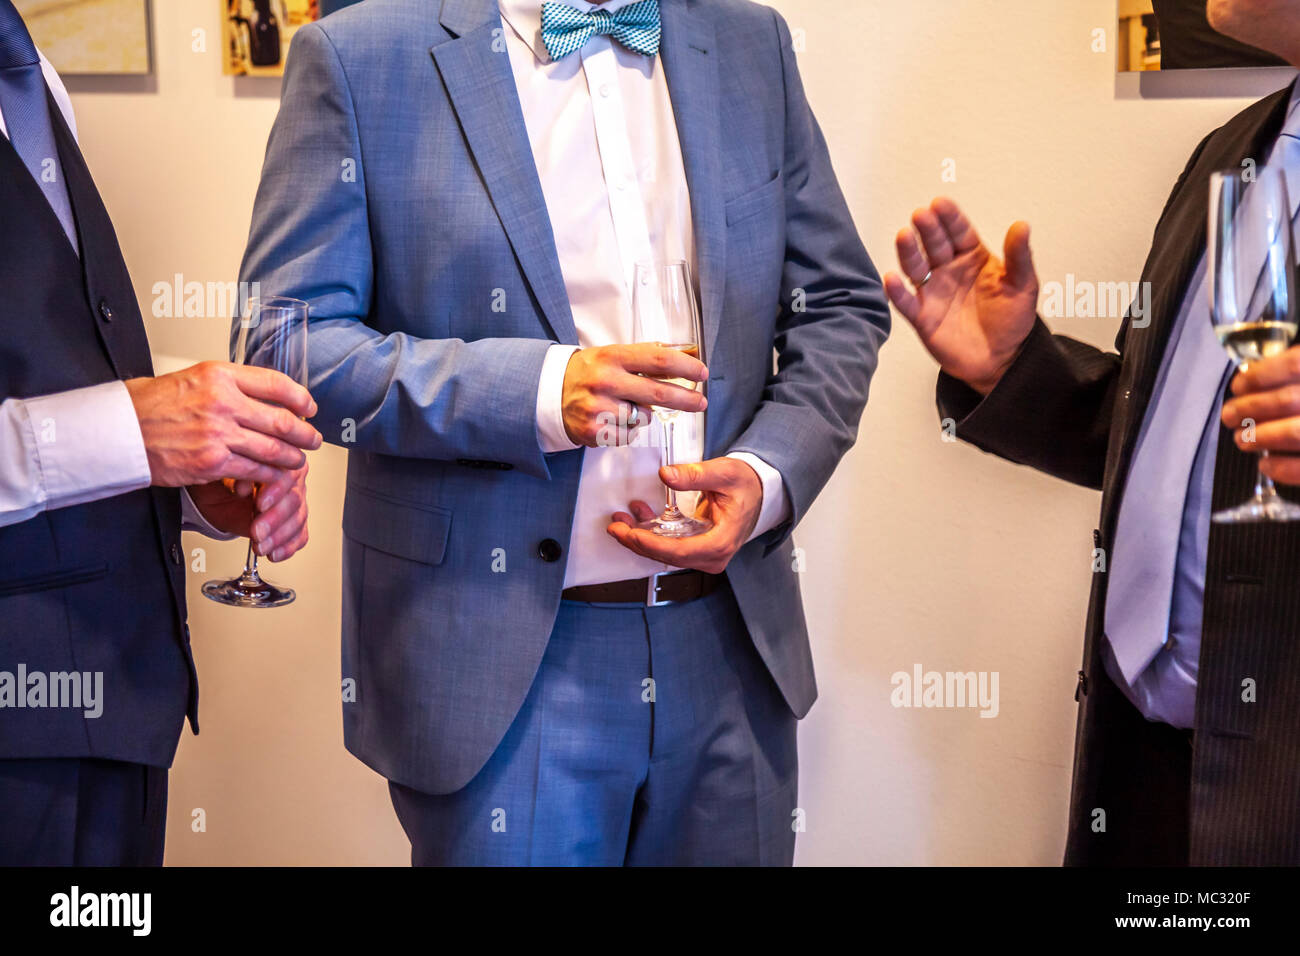 Men enjoying the party with a glass in the hand. - Stock Image